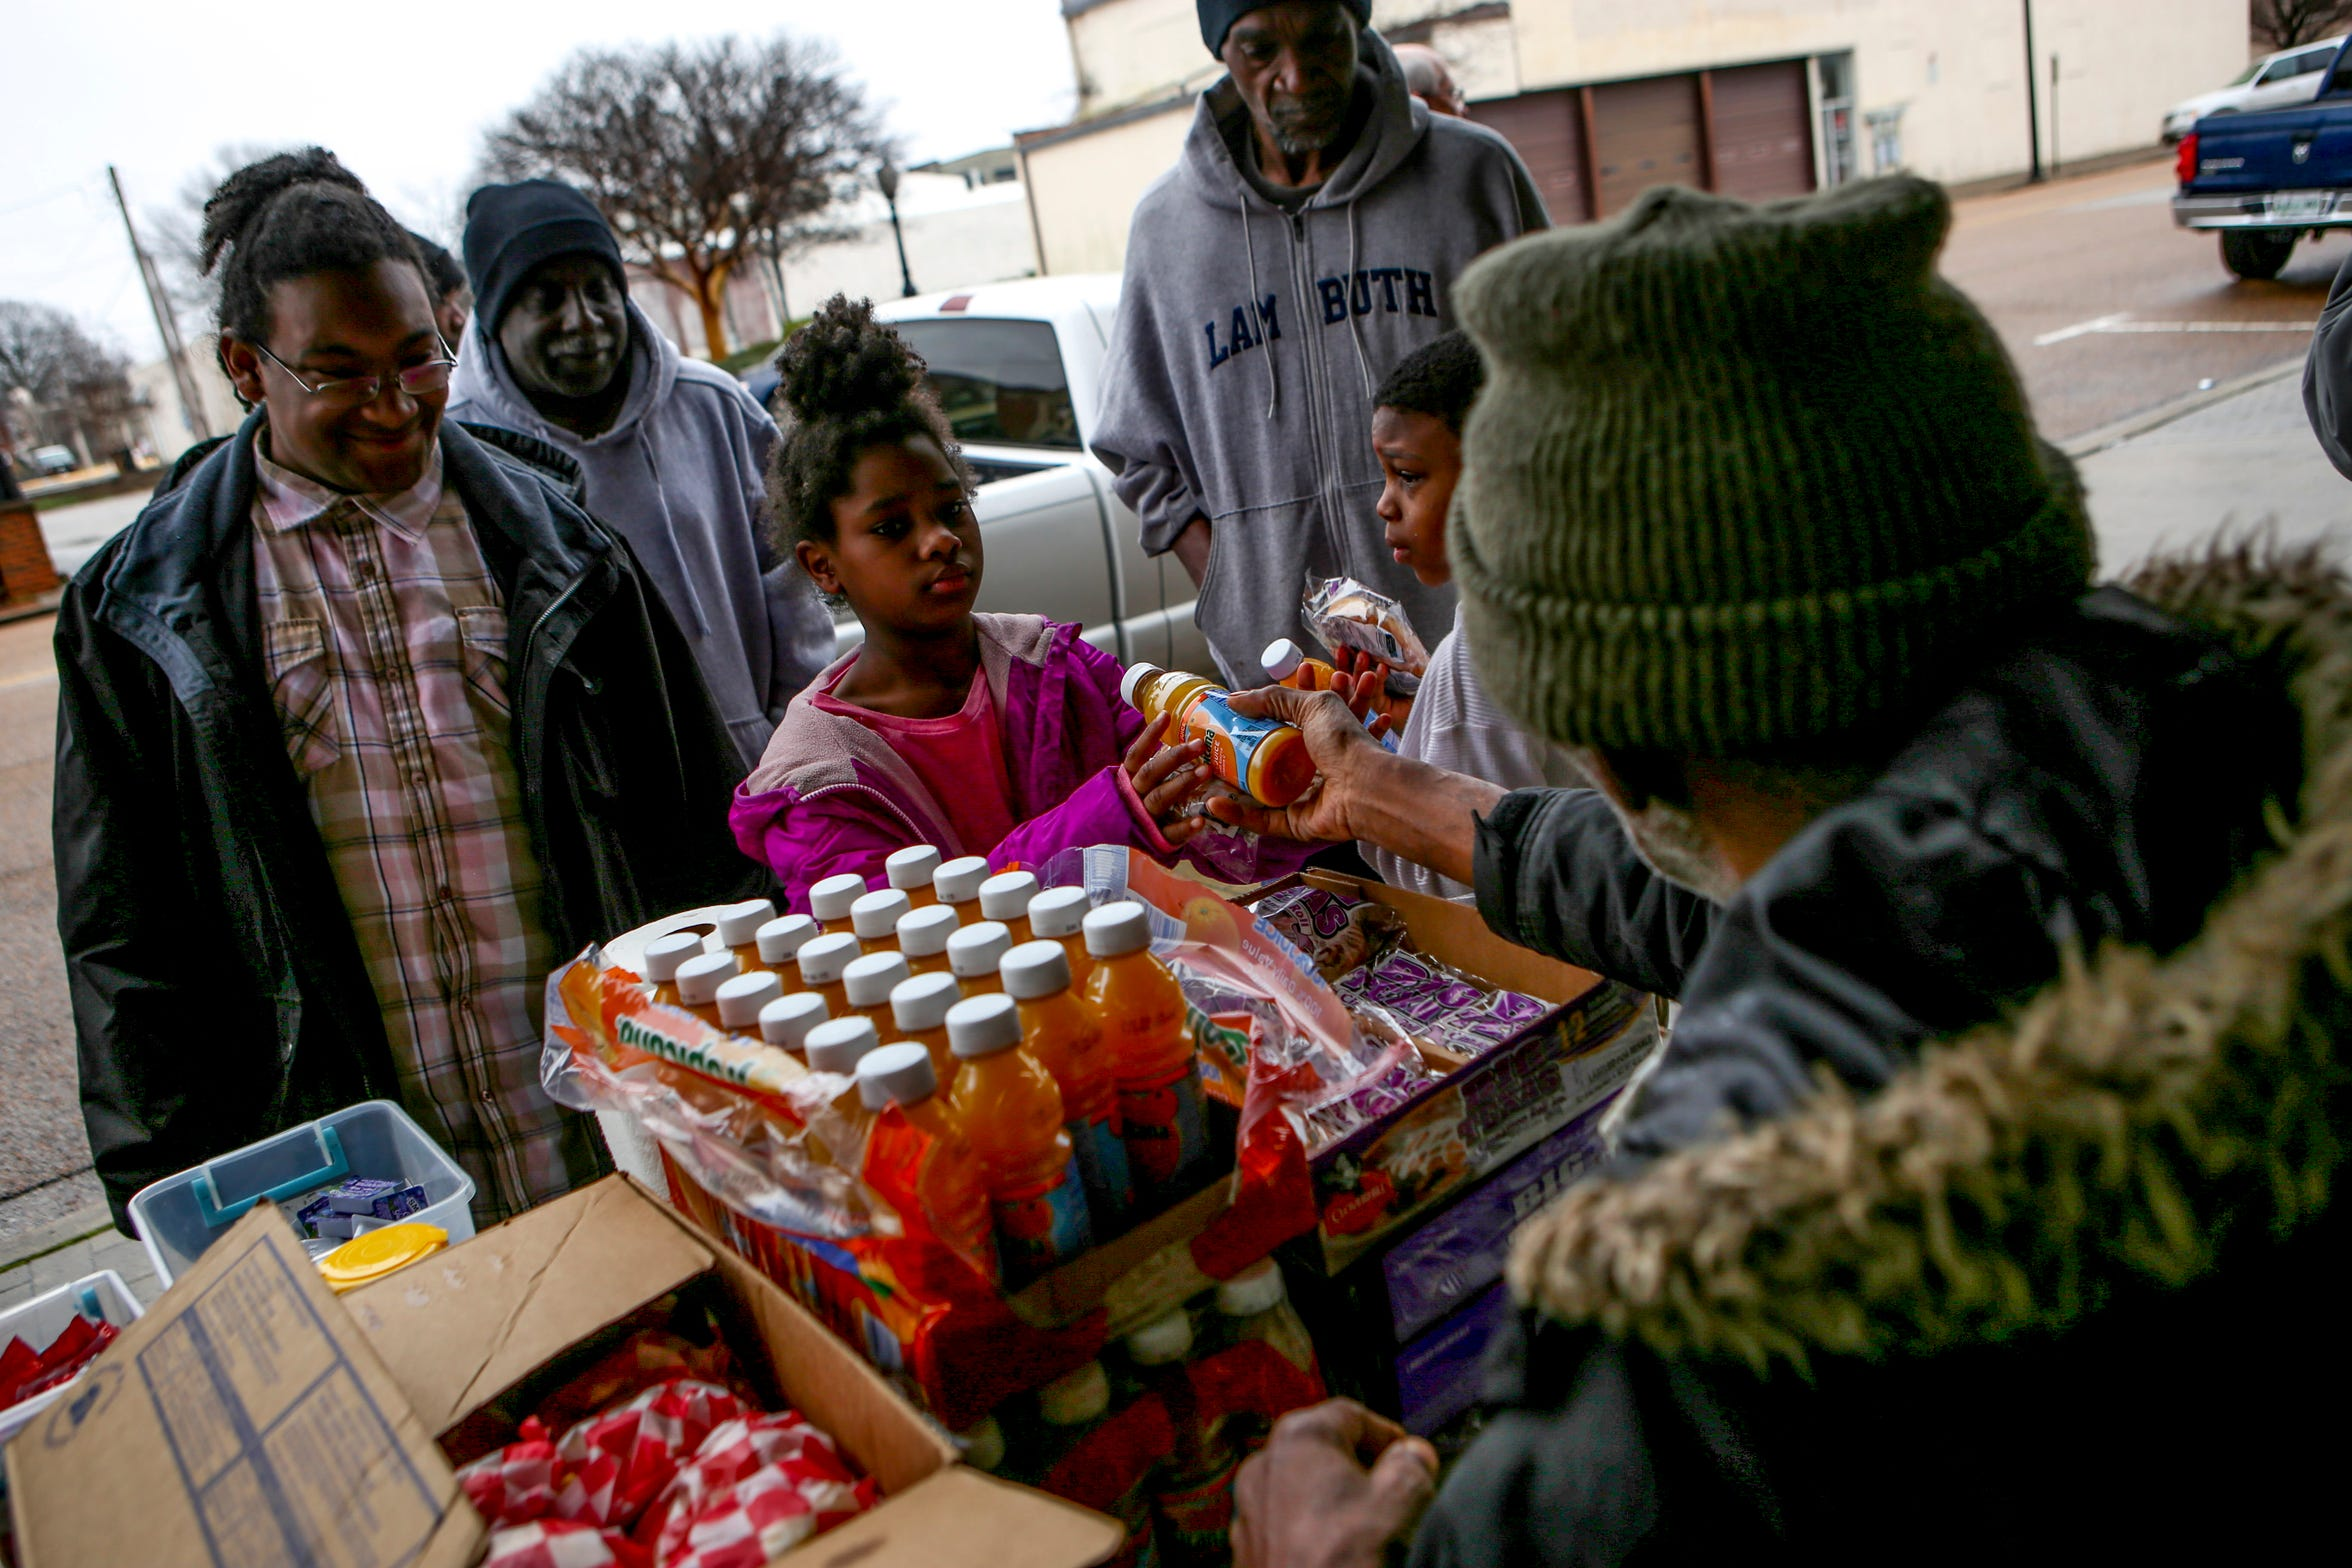 Robert Wynne hands out orange juice and breakfast meals to anyone in line waiting for food at the Church Without Walls at the intersection of Church and College in Jackson, Tenn., on Sunday, Feb. 17, 2019.